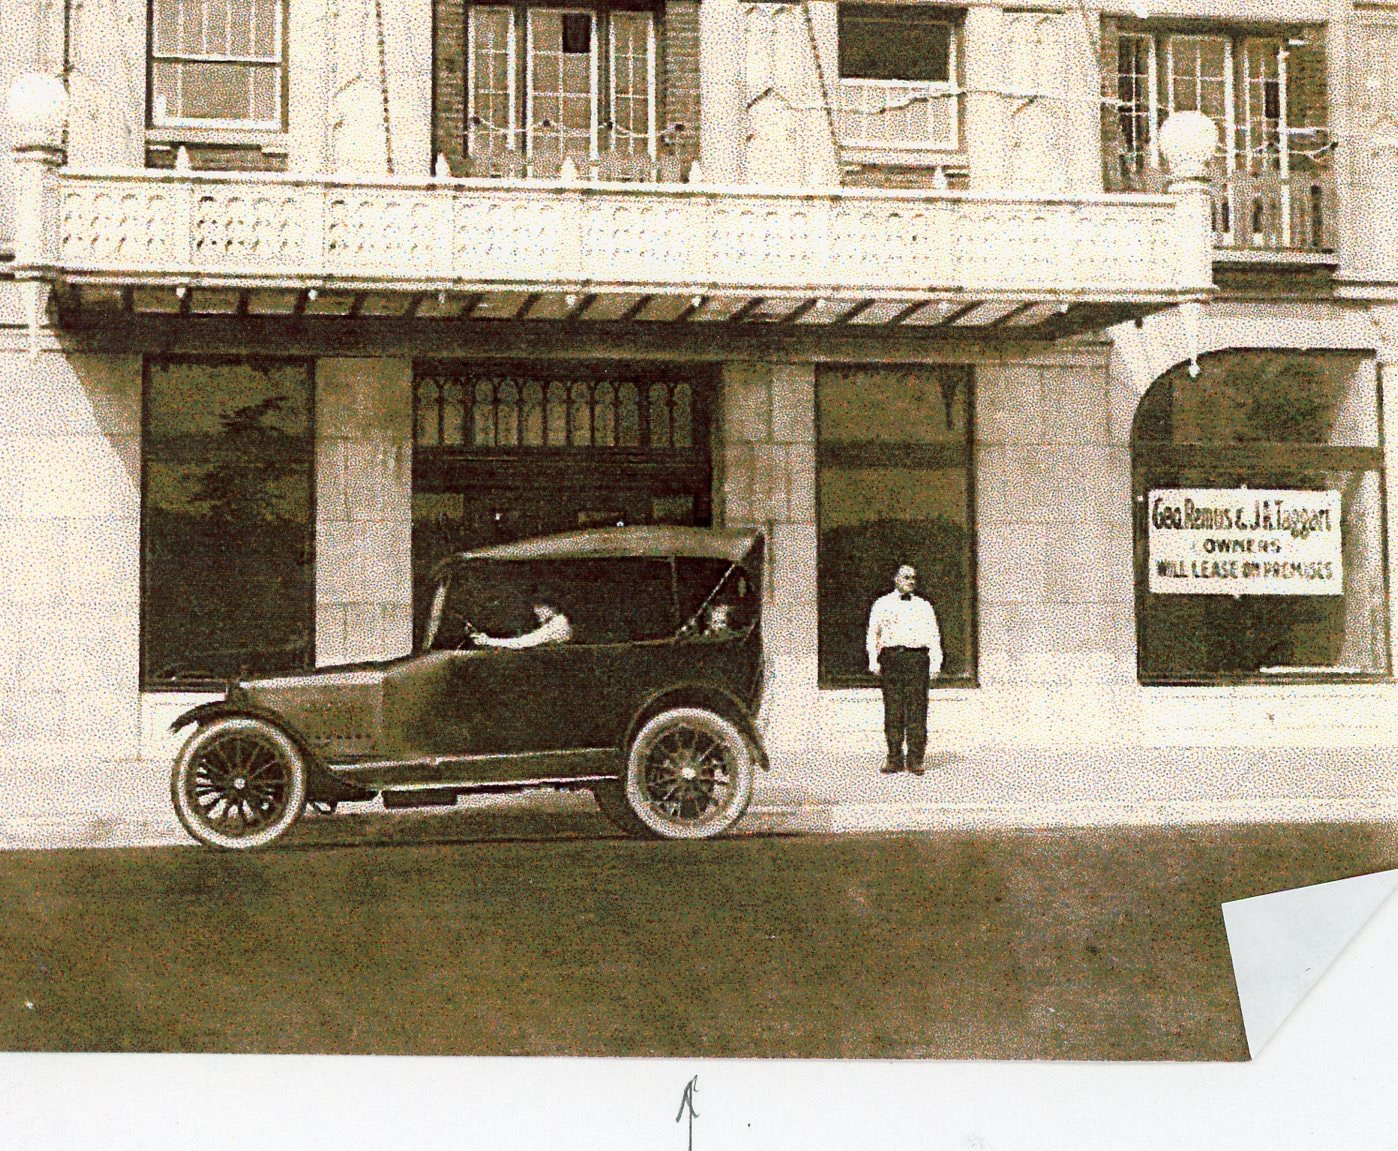 Remus during his pharmacy years, pictured standing in front of the nine-story Geo. Remus and J.A. Taggart Office Building at 4520 North Clarendon Avenue in Chicago, near Lake Shore Drive and on the edge of Buena Park and Uptown. Lillian is in the driver's seat, while Romola is sitting behind her.